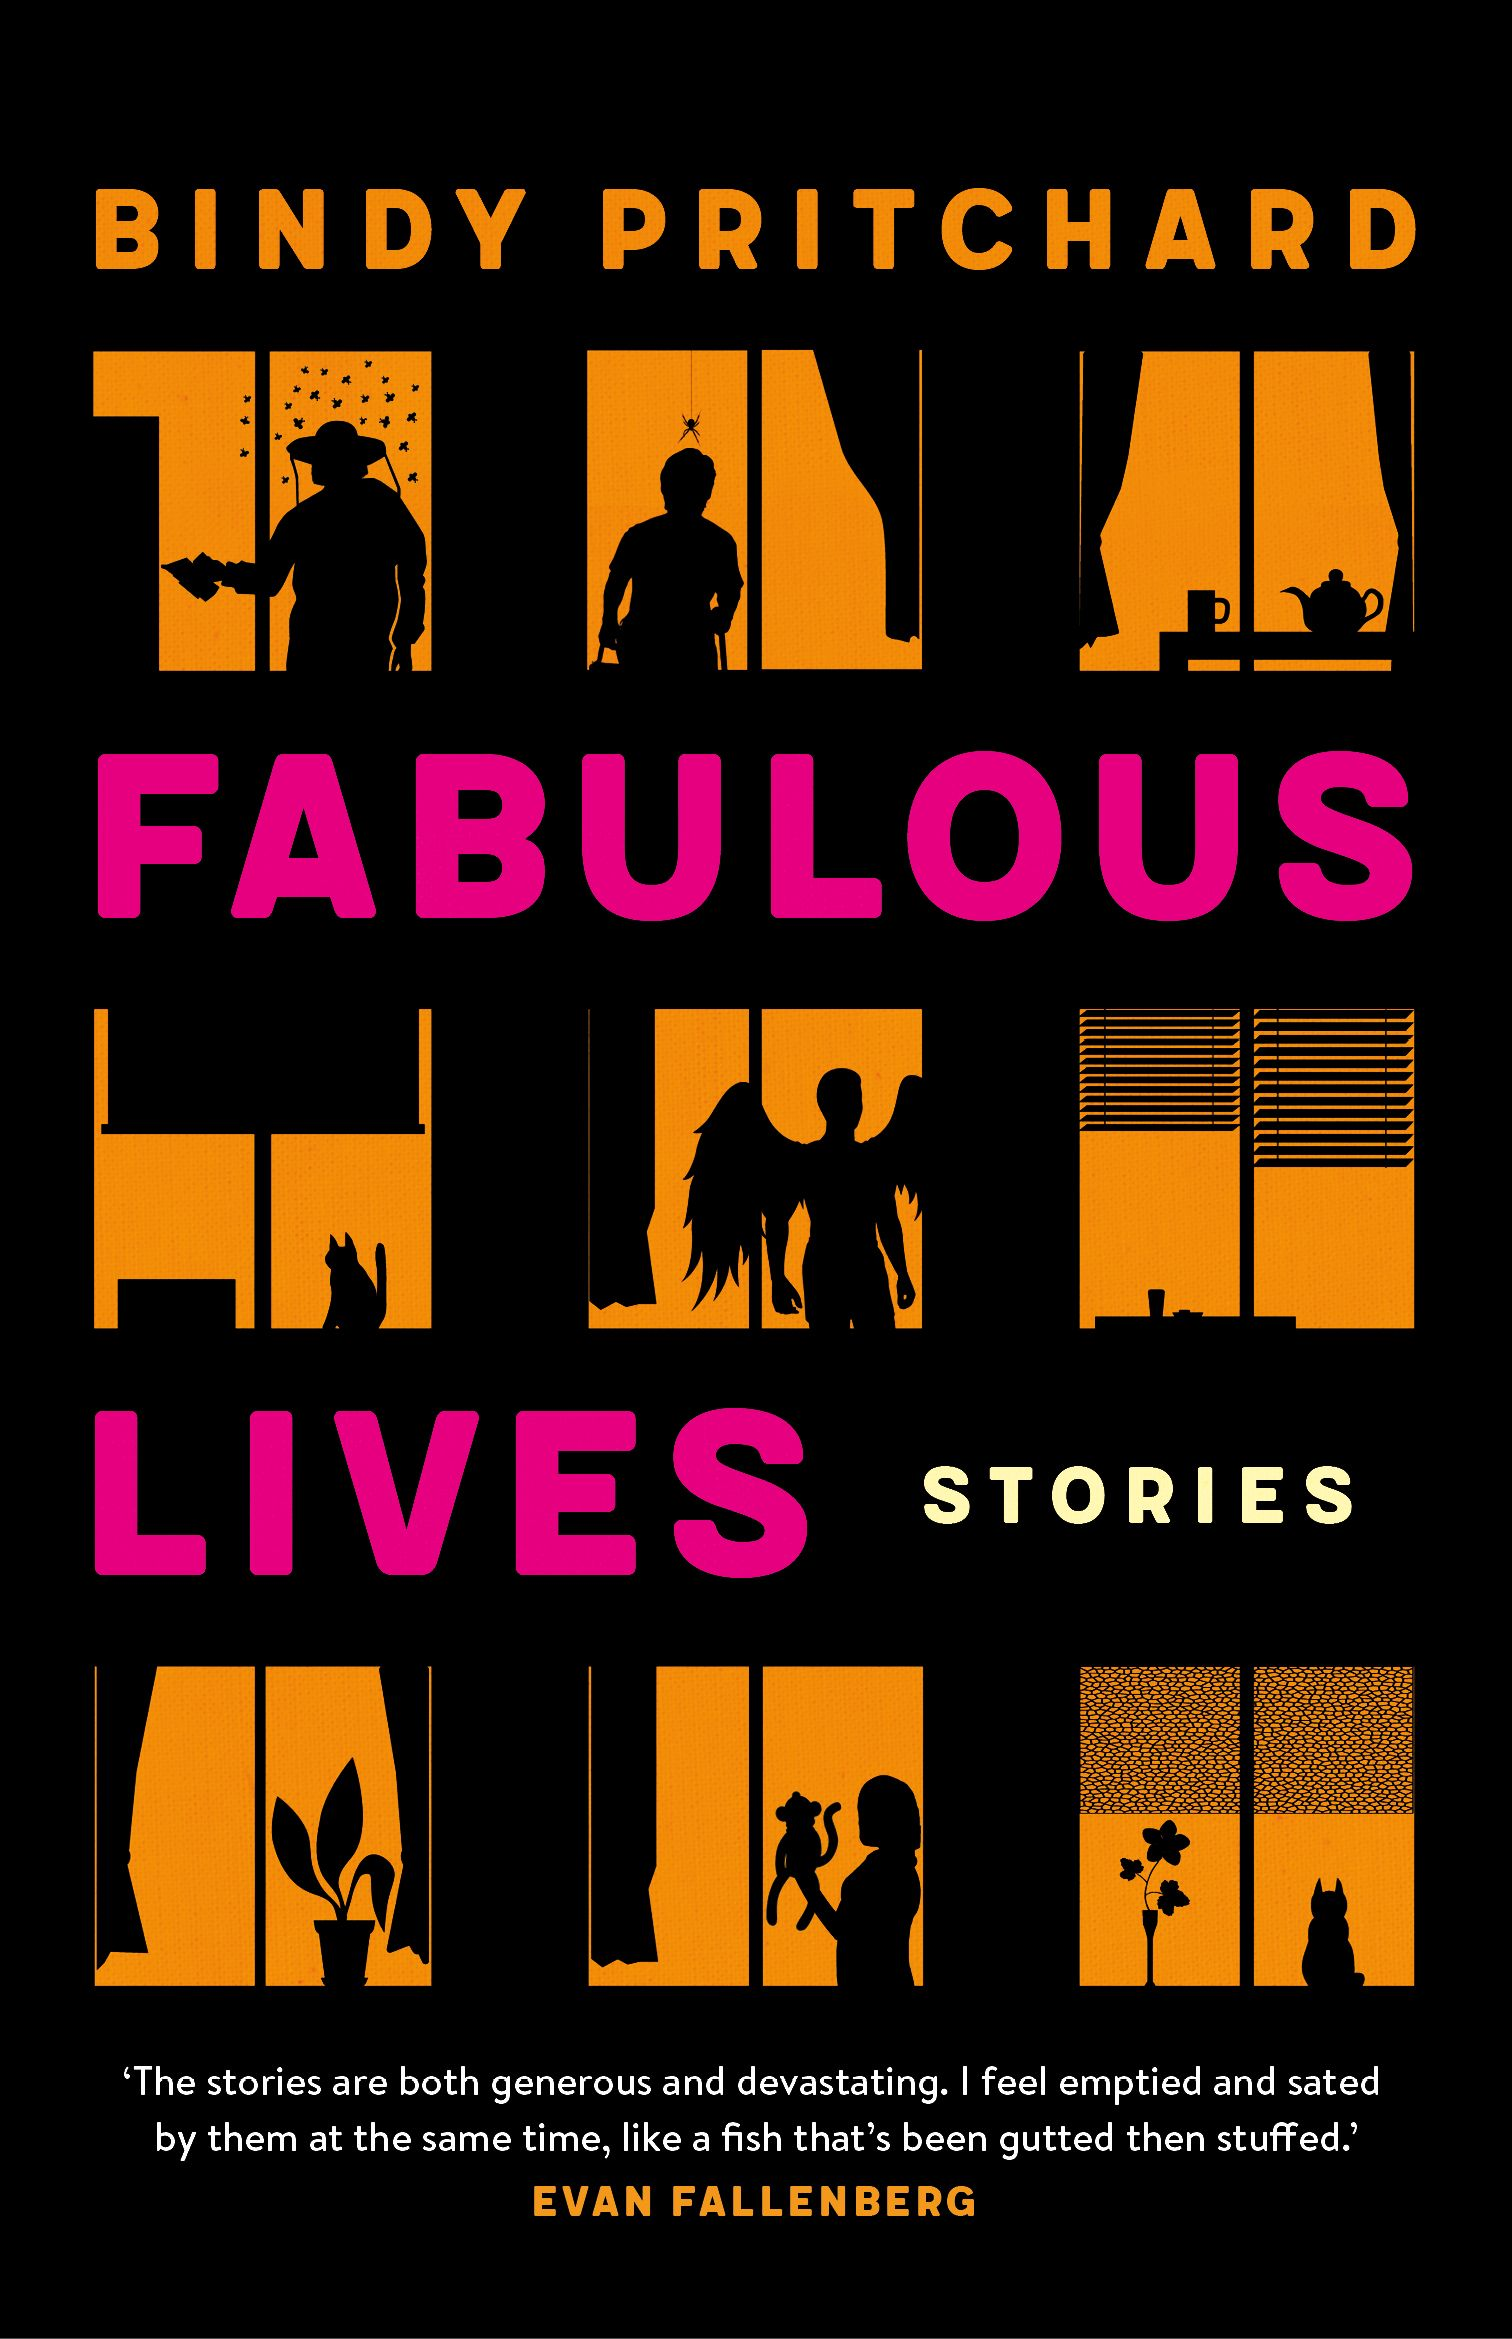 Fabulous Lives by Bindy Pritchard. Cover design by Debra